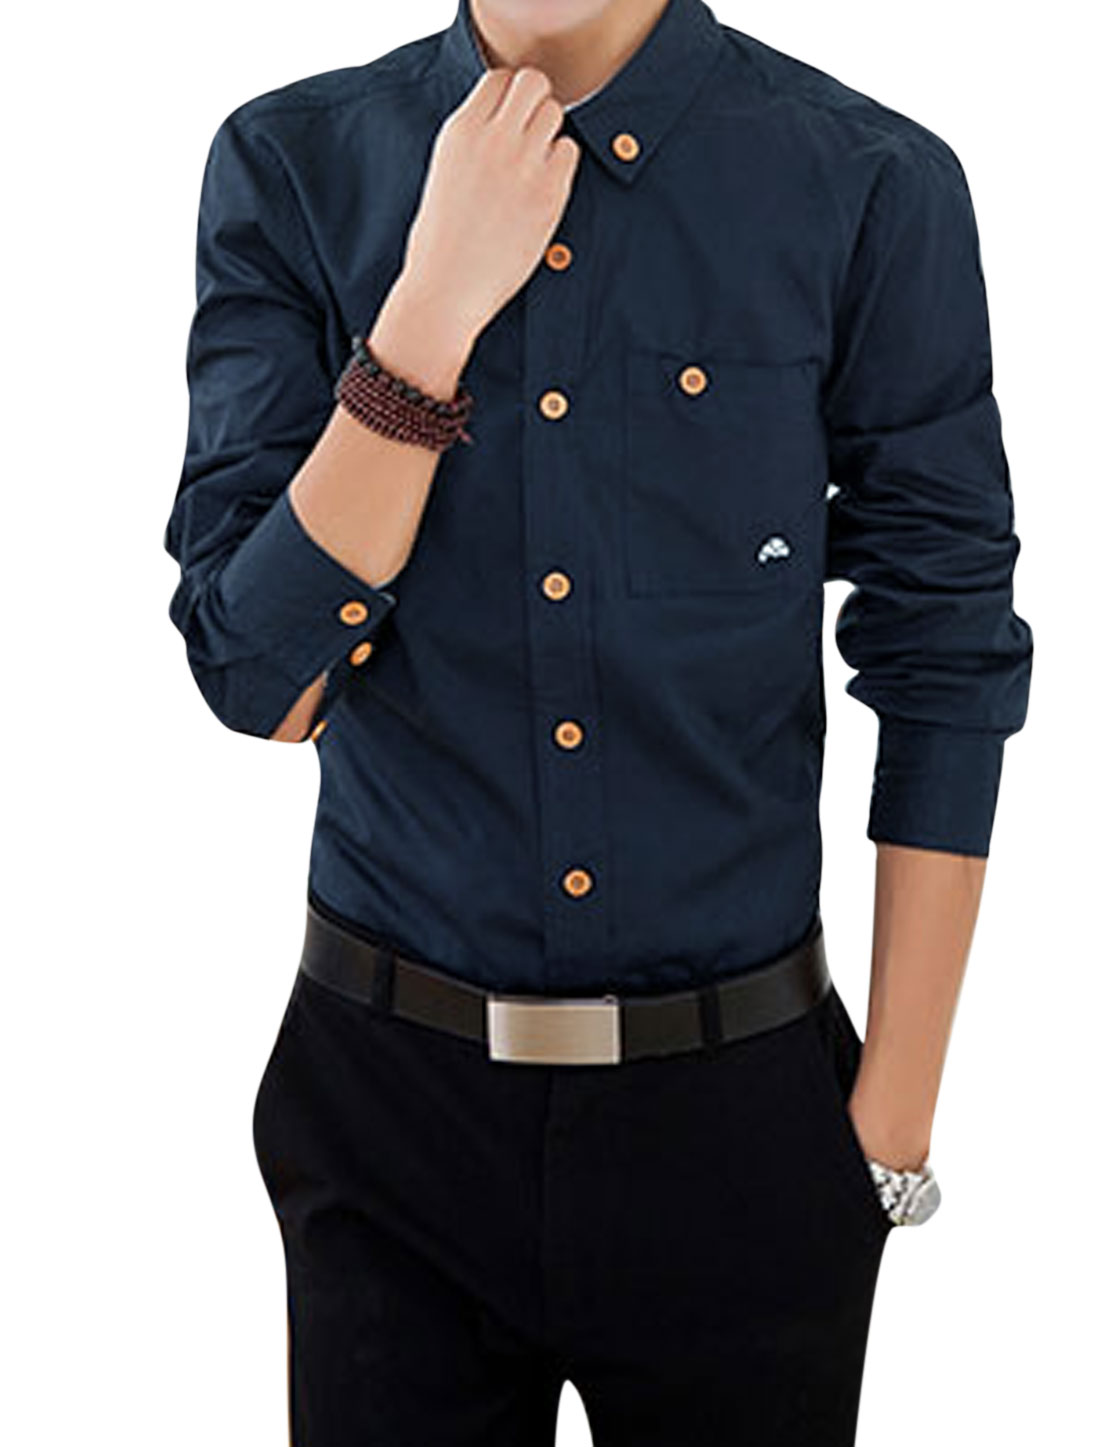 Man Point Collar Buttoned Chest Pocket Casual Shirts Navy Blue M